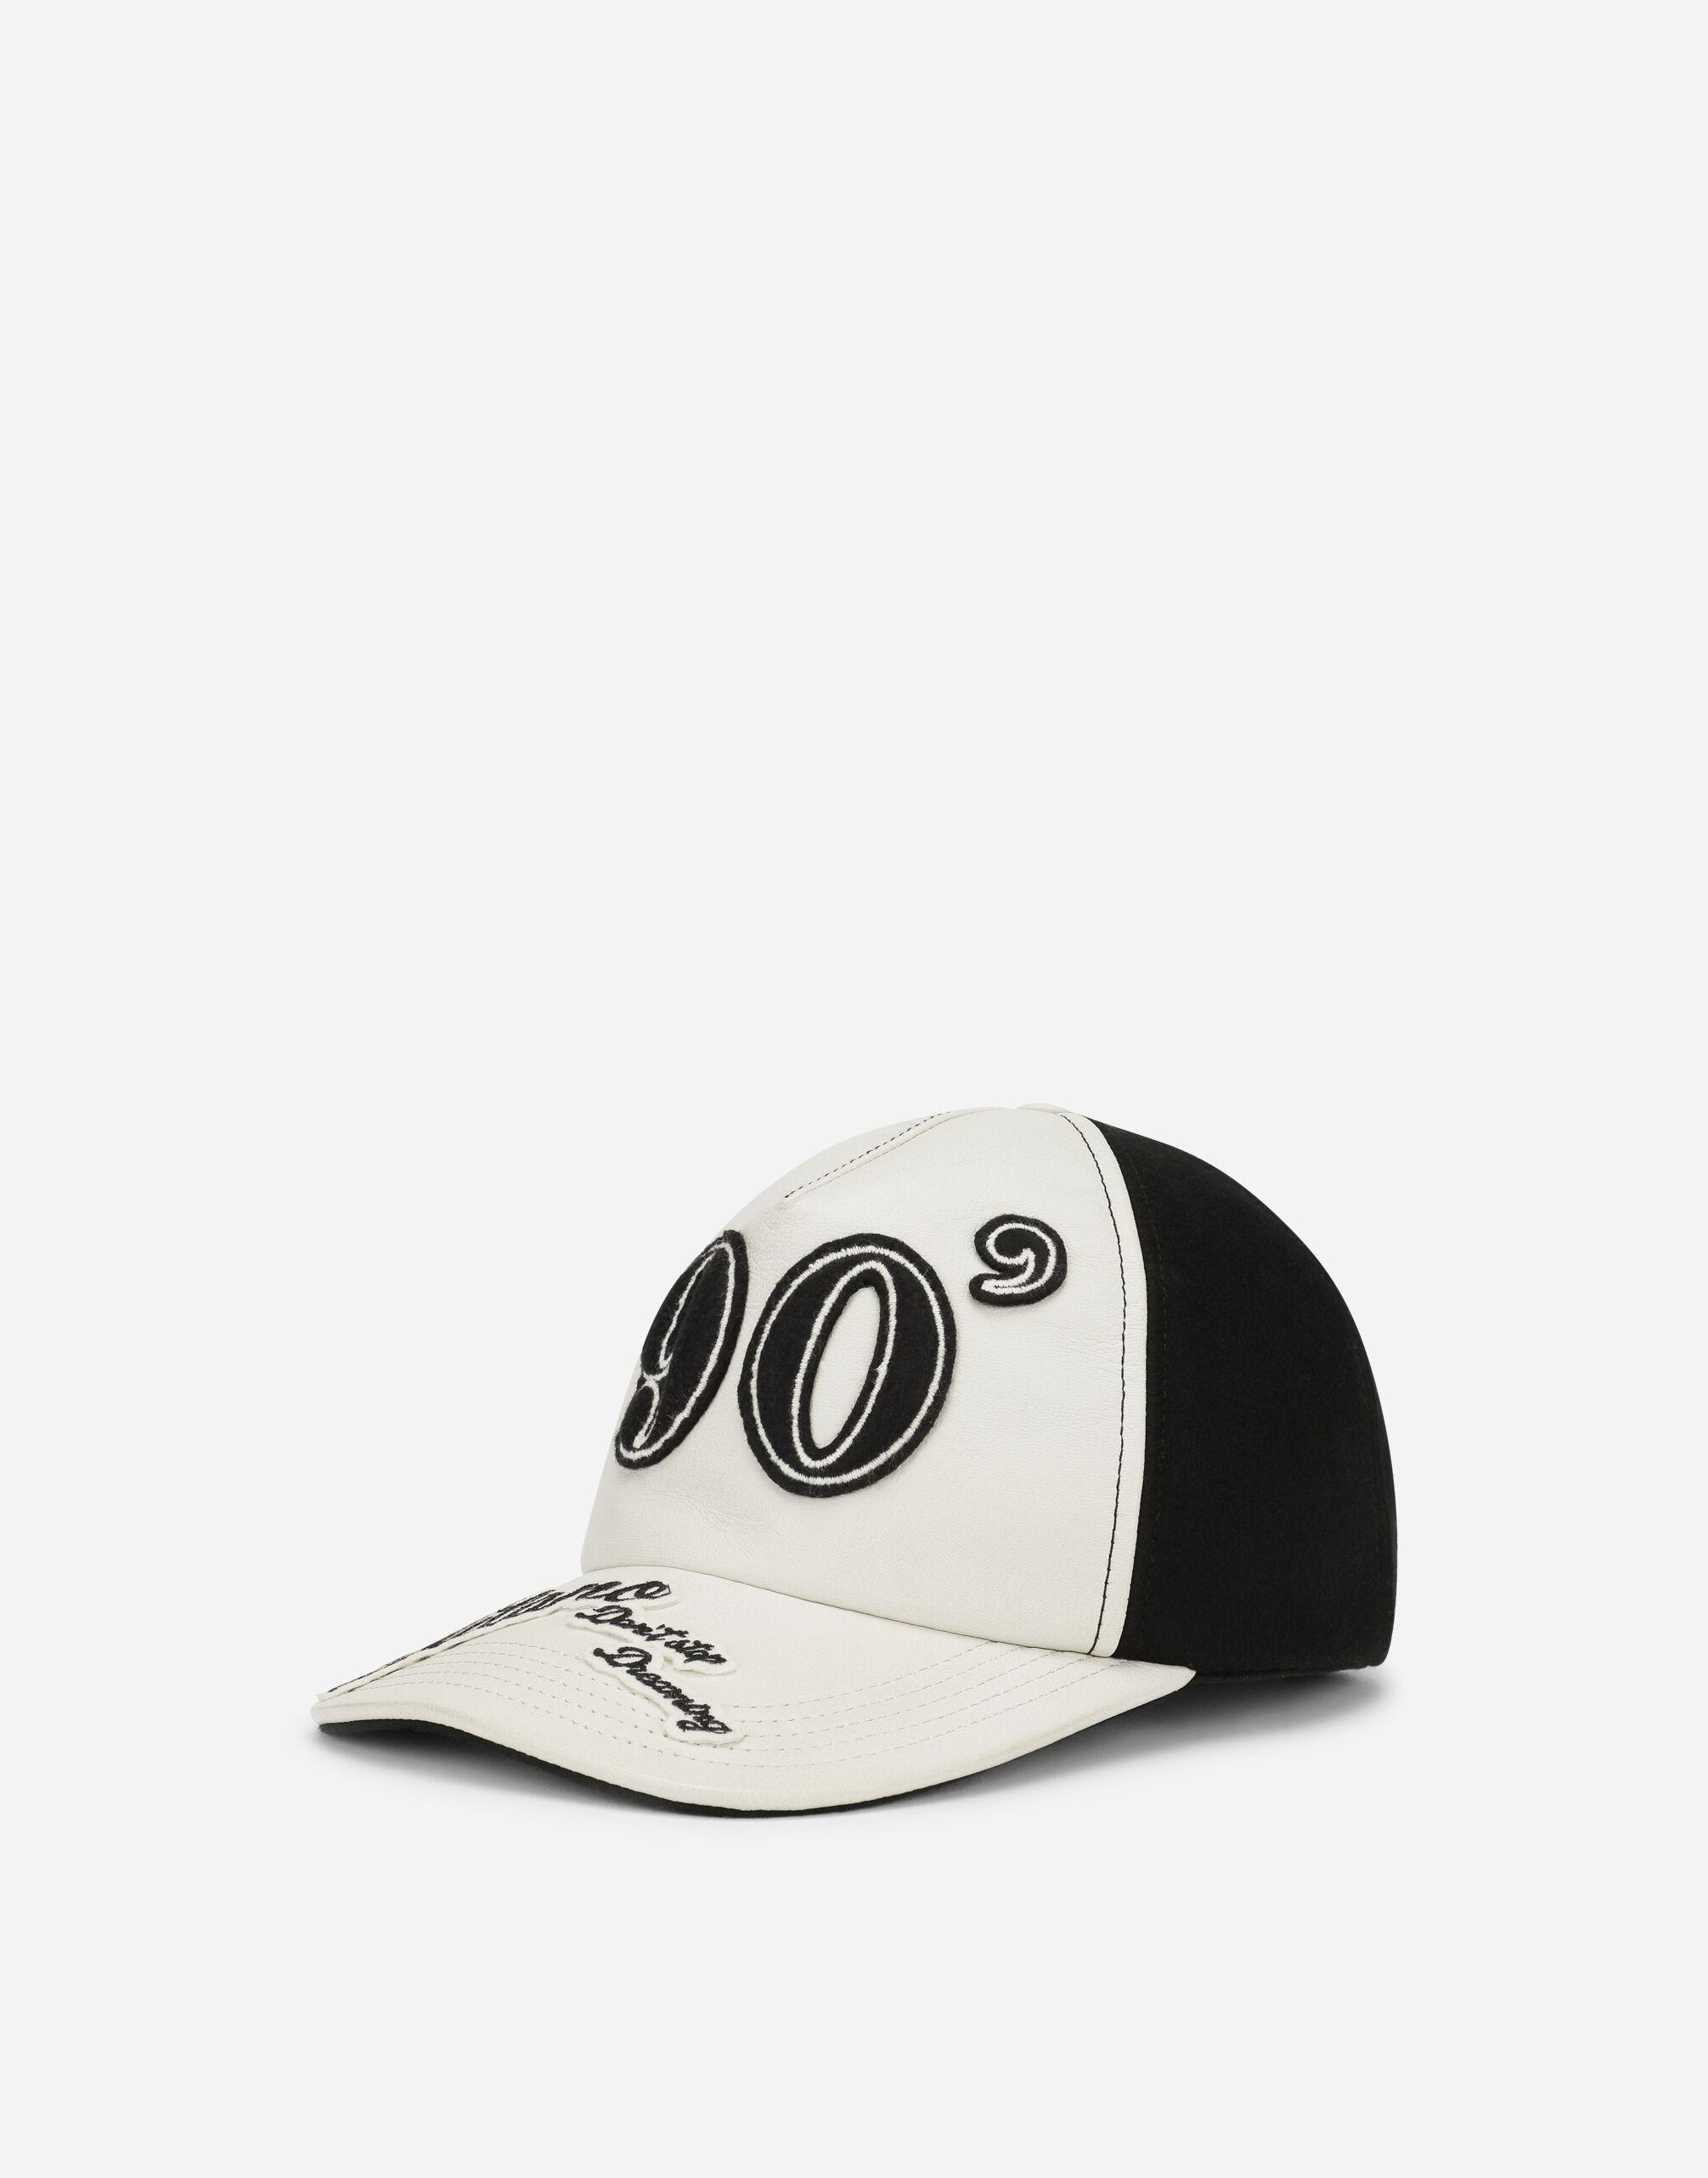 Baize and leather baseball cap with lettering